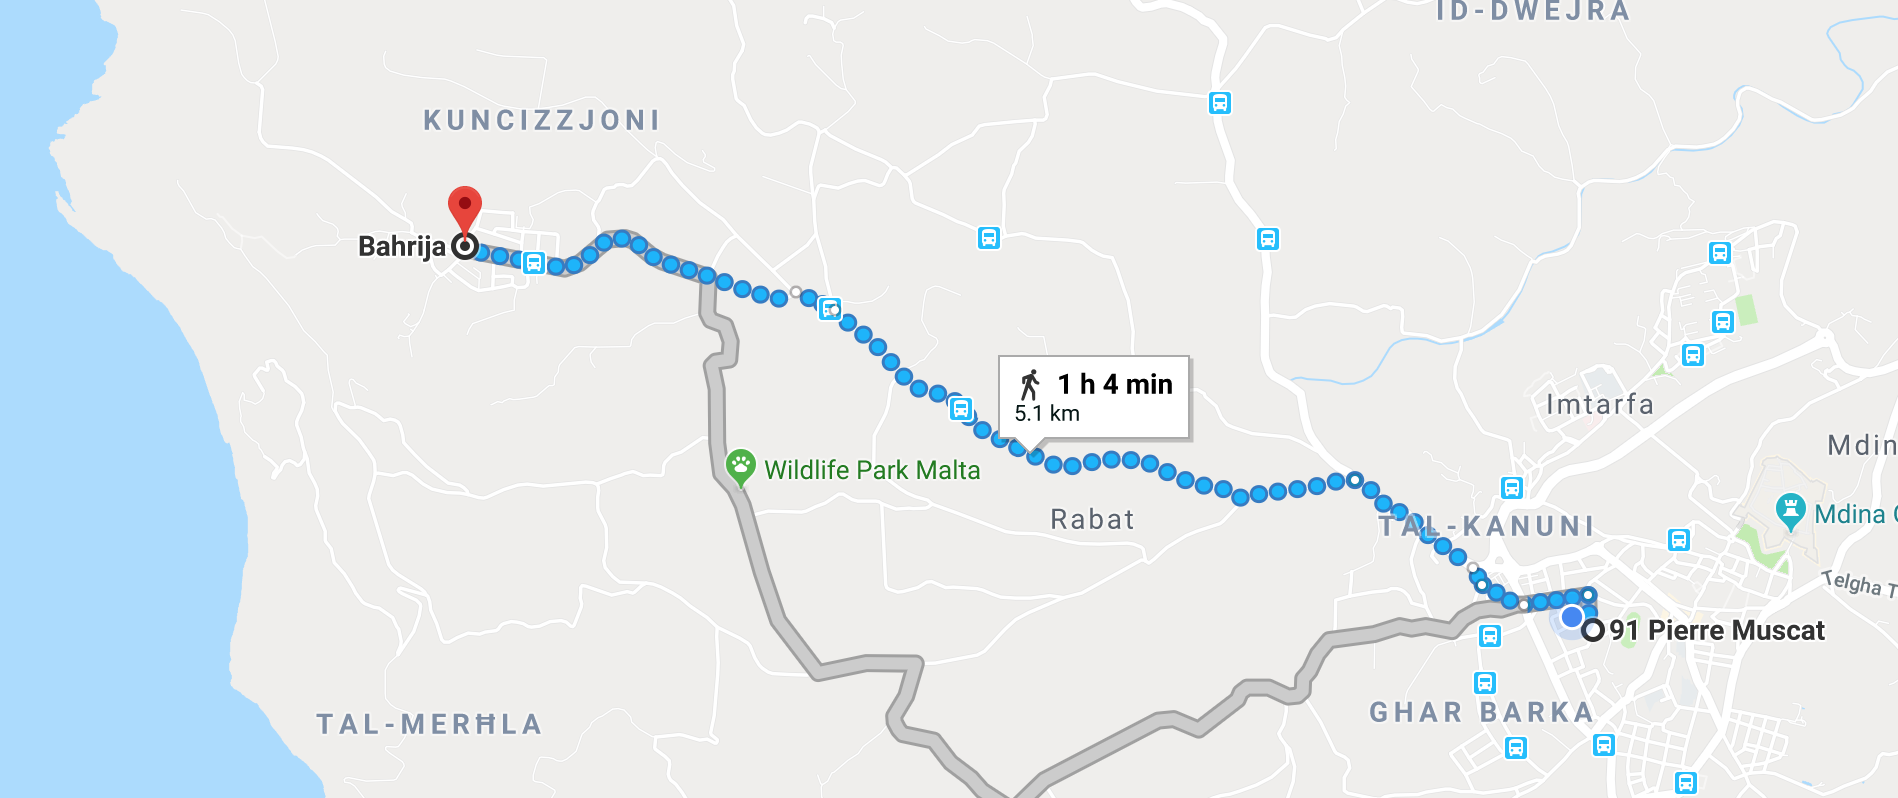 Directions to Bahrija